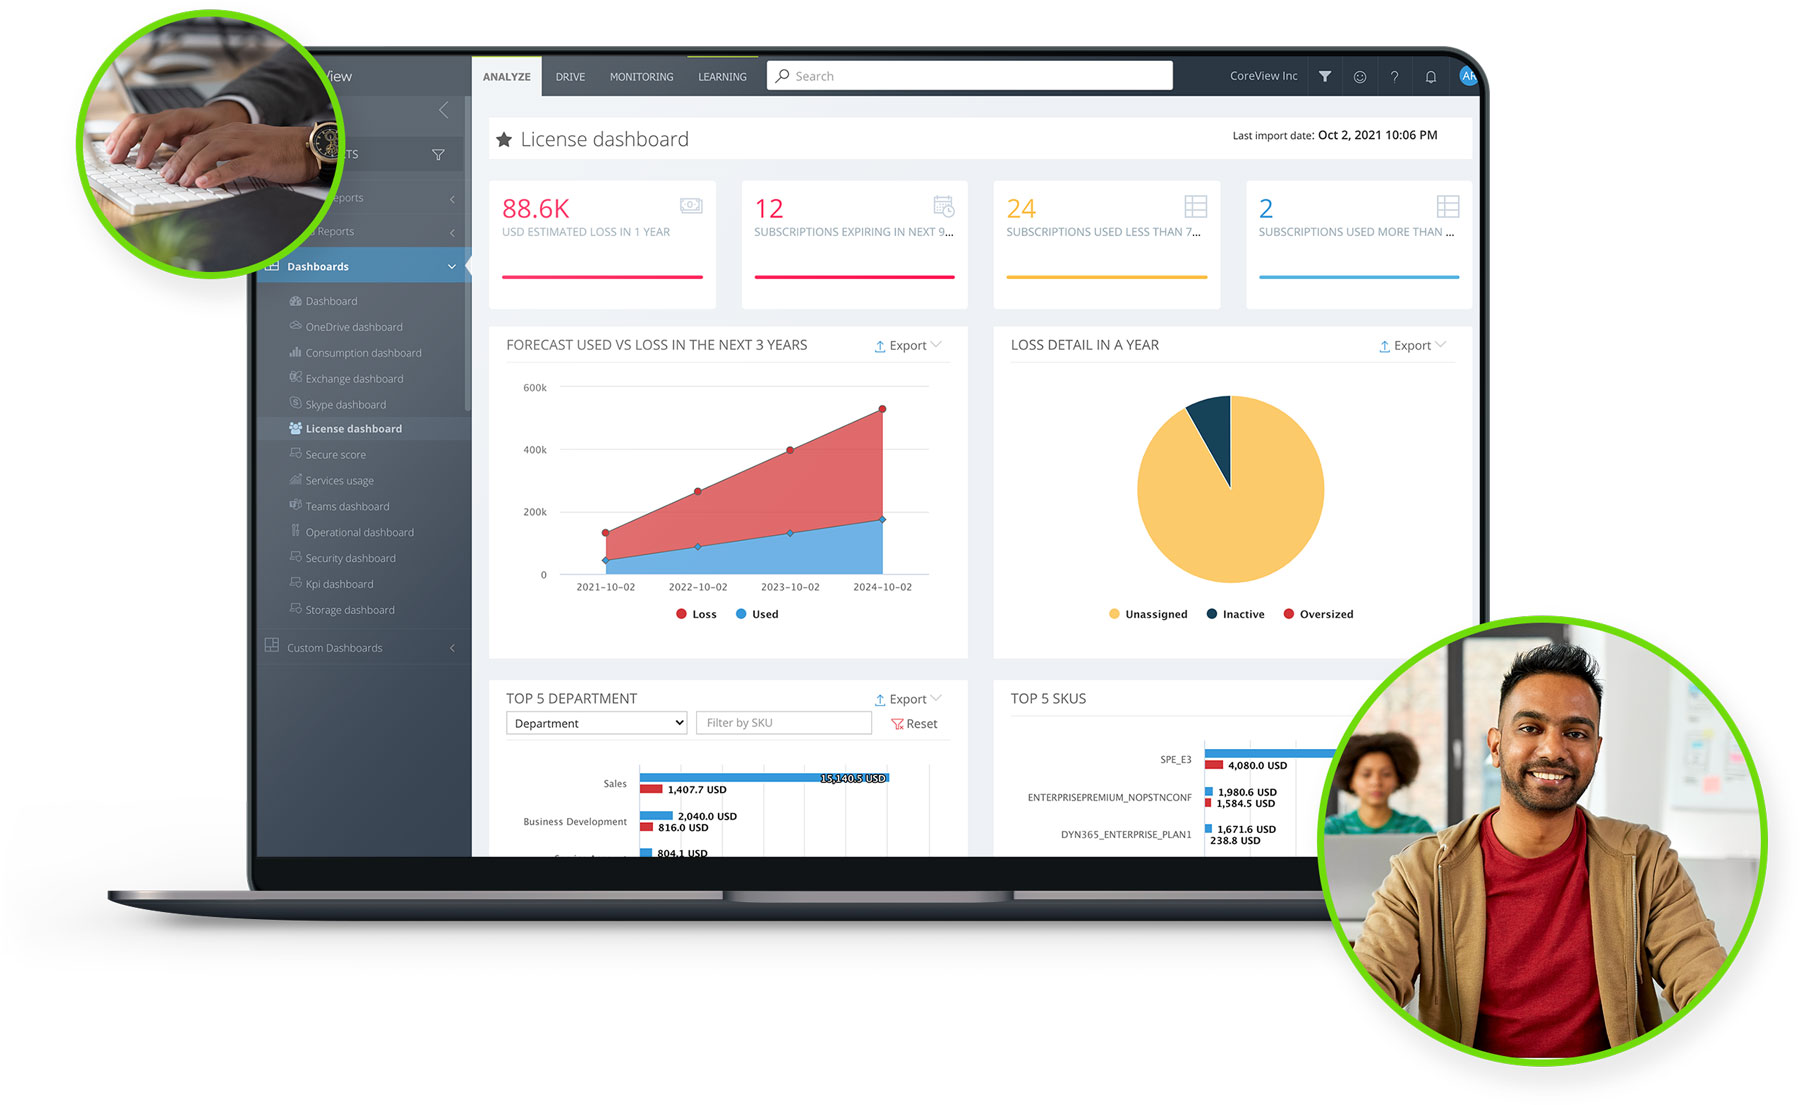 Screenshot of CoreView's license management dashboard with a man and a hand